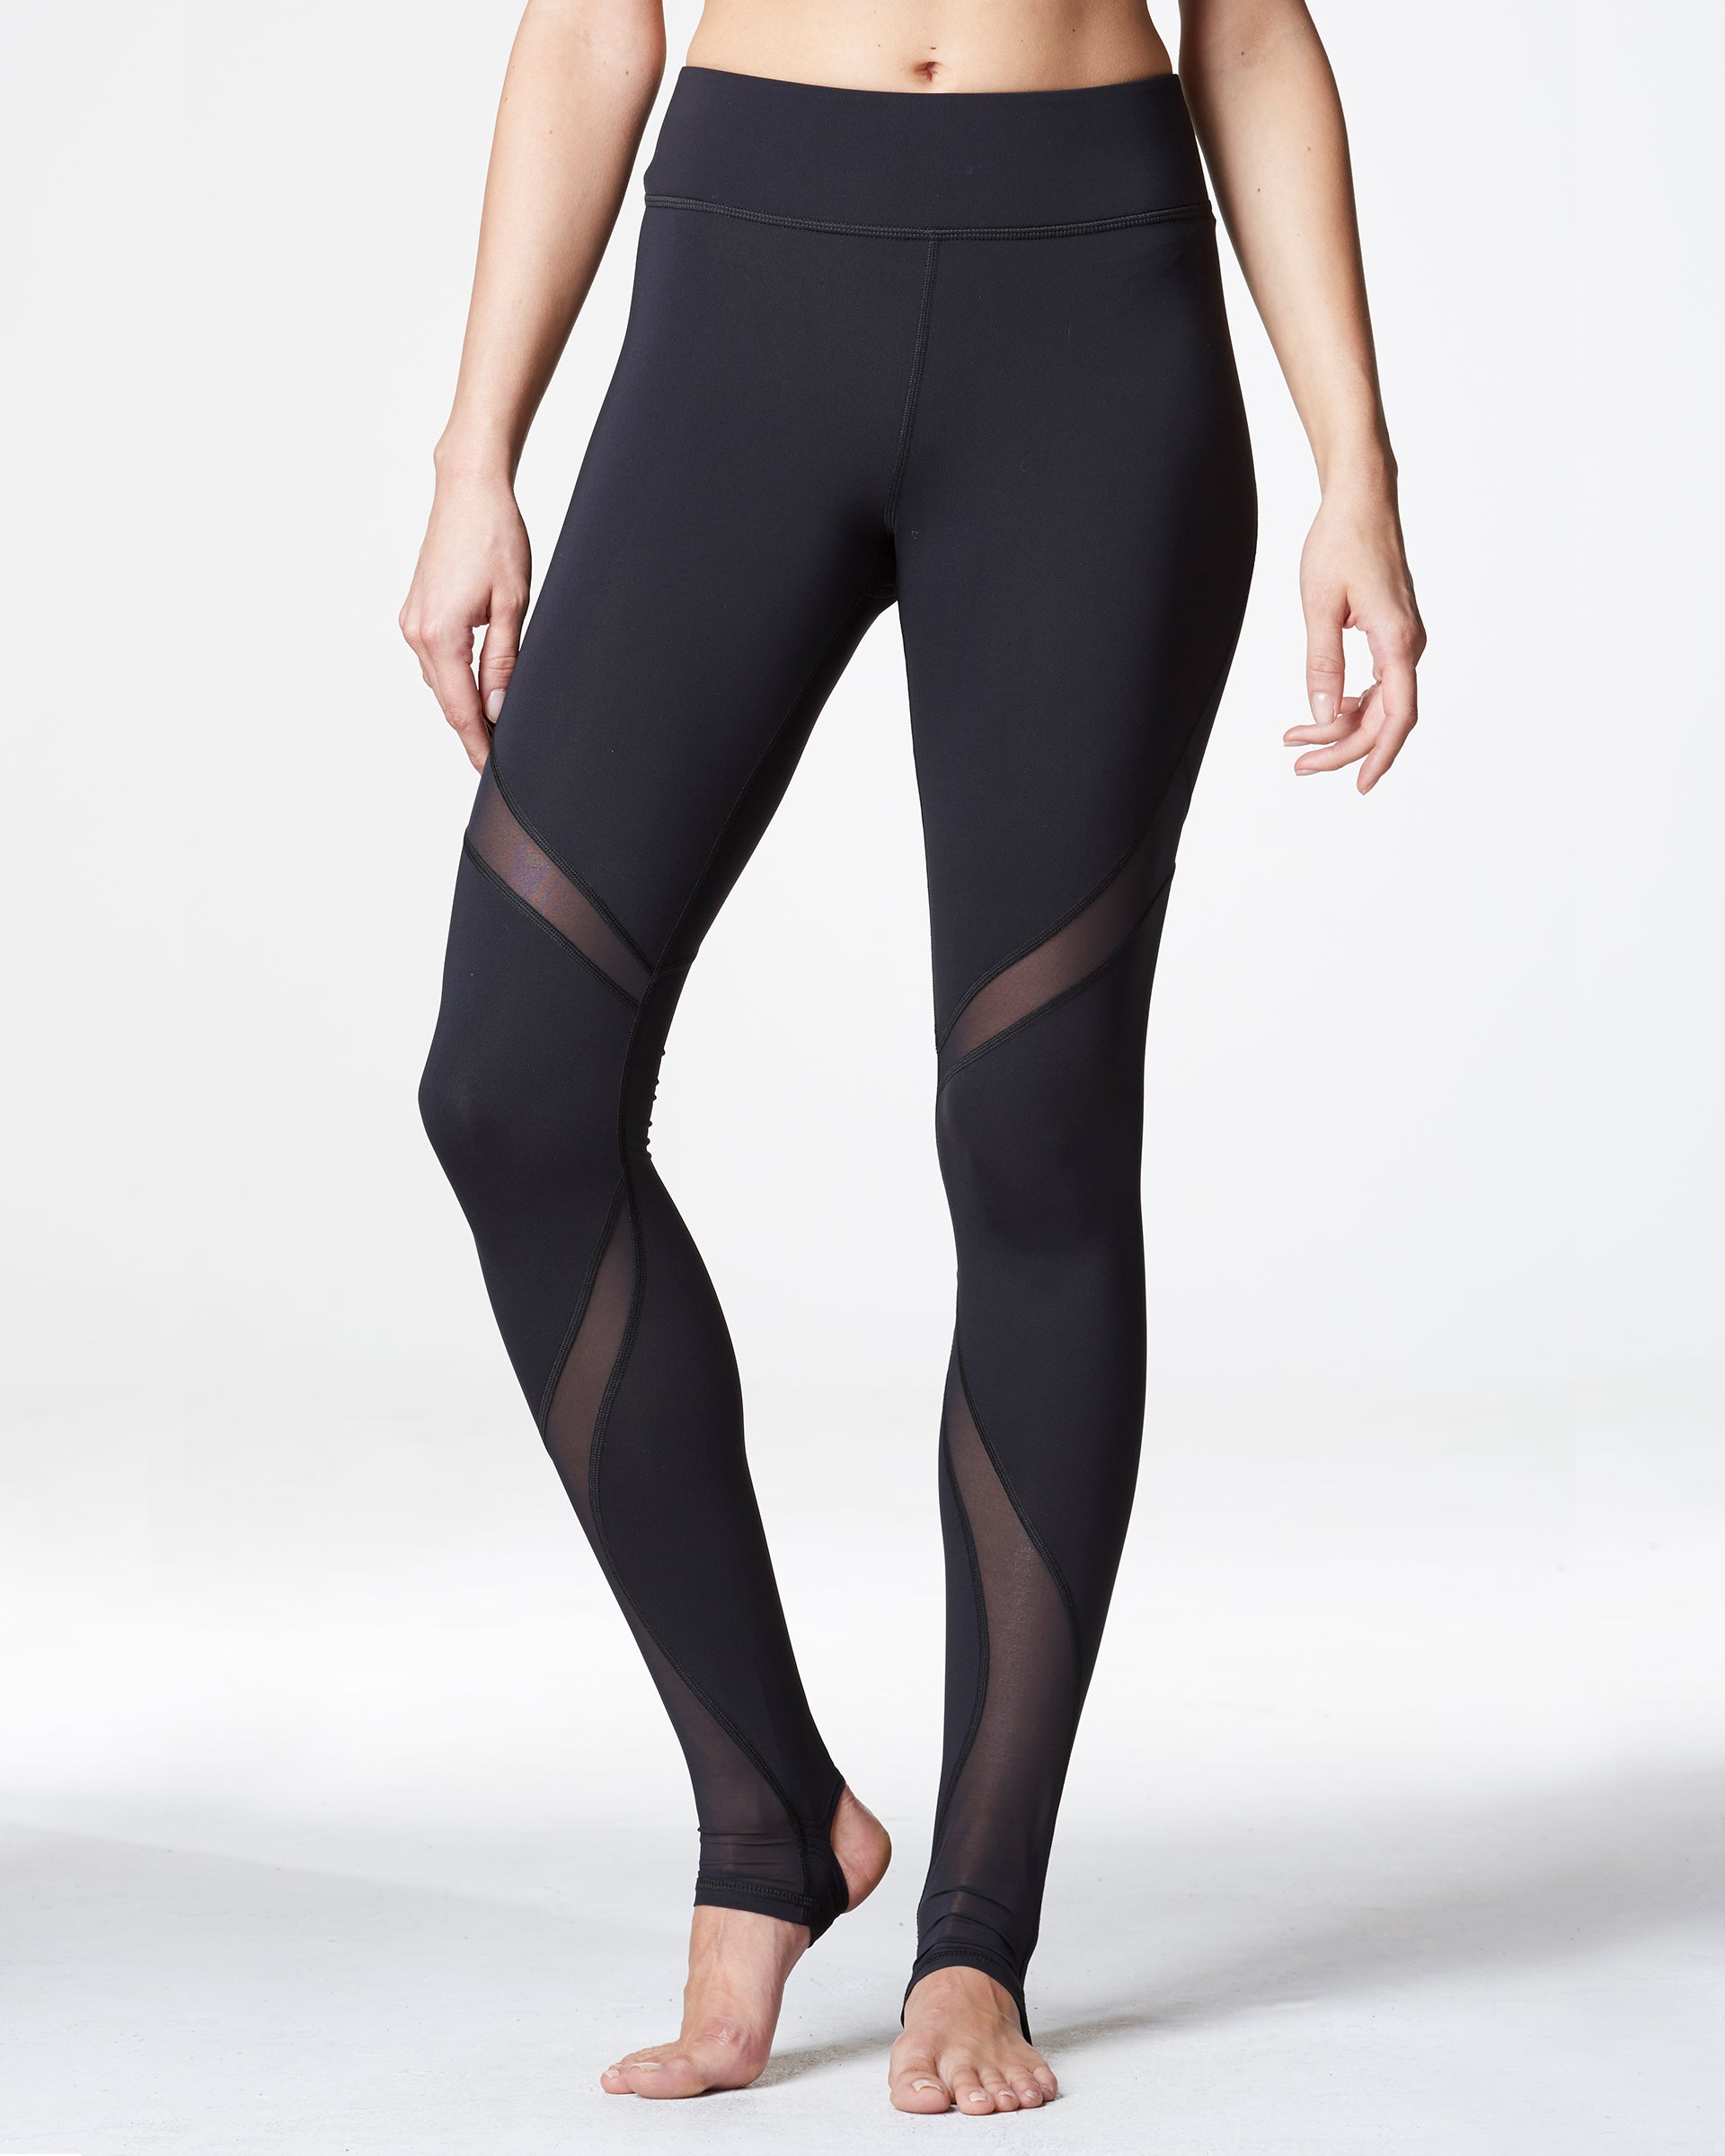 quasar-legging-black